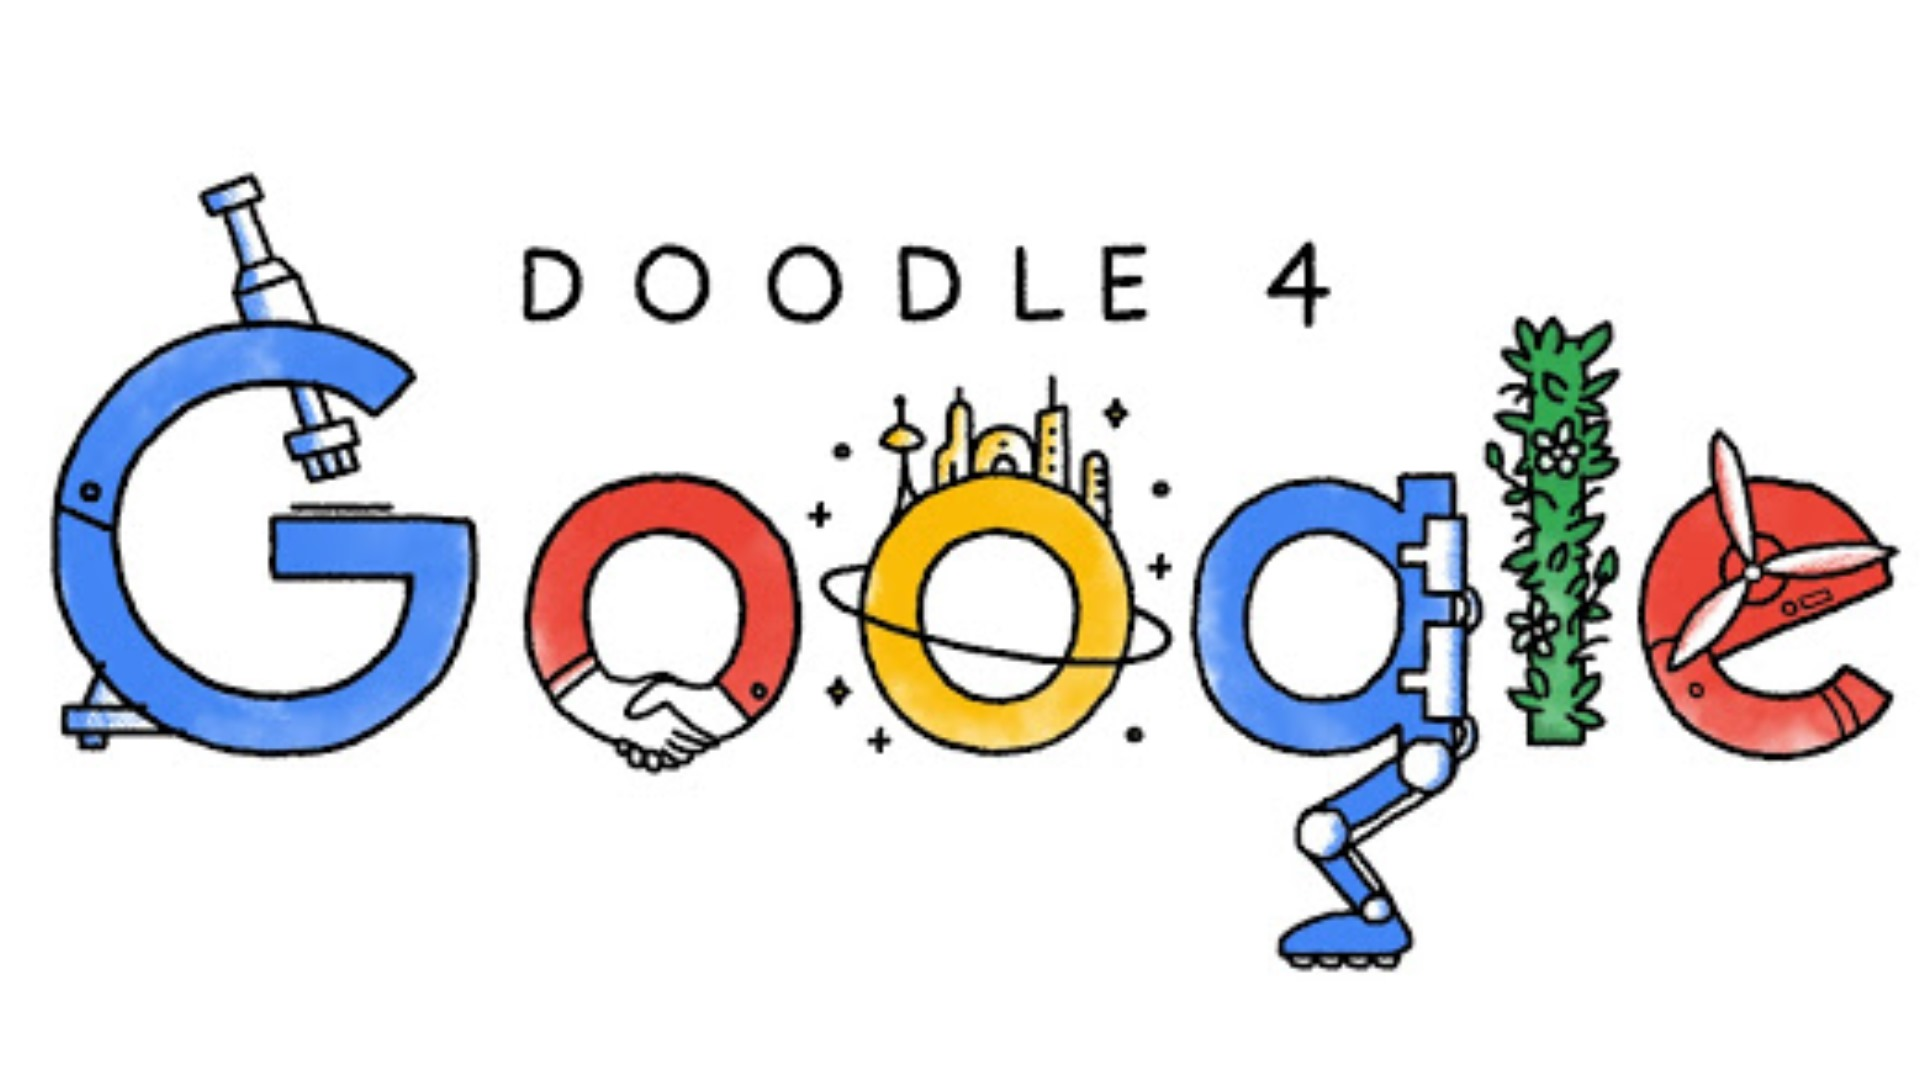 setting up a google doodle poll